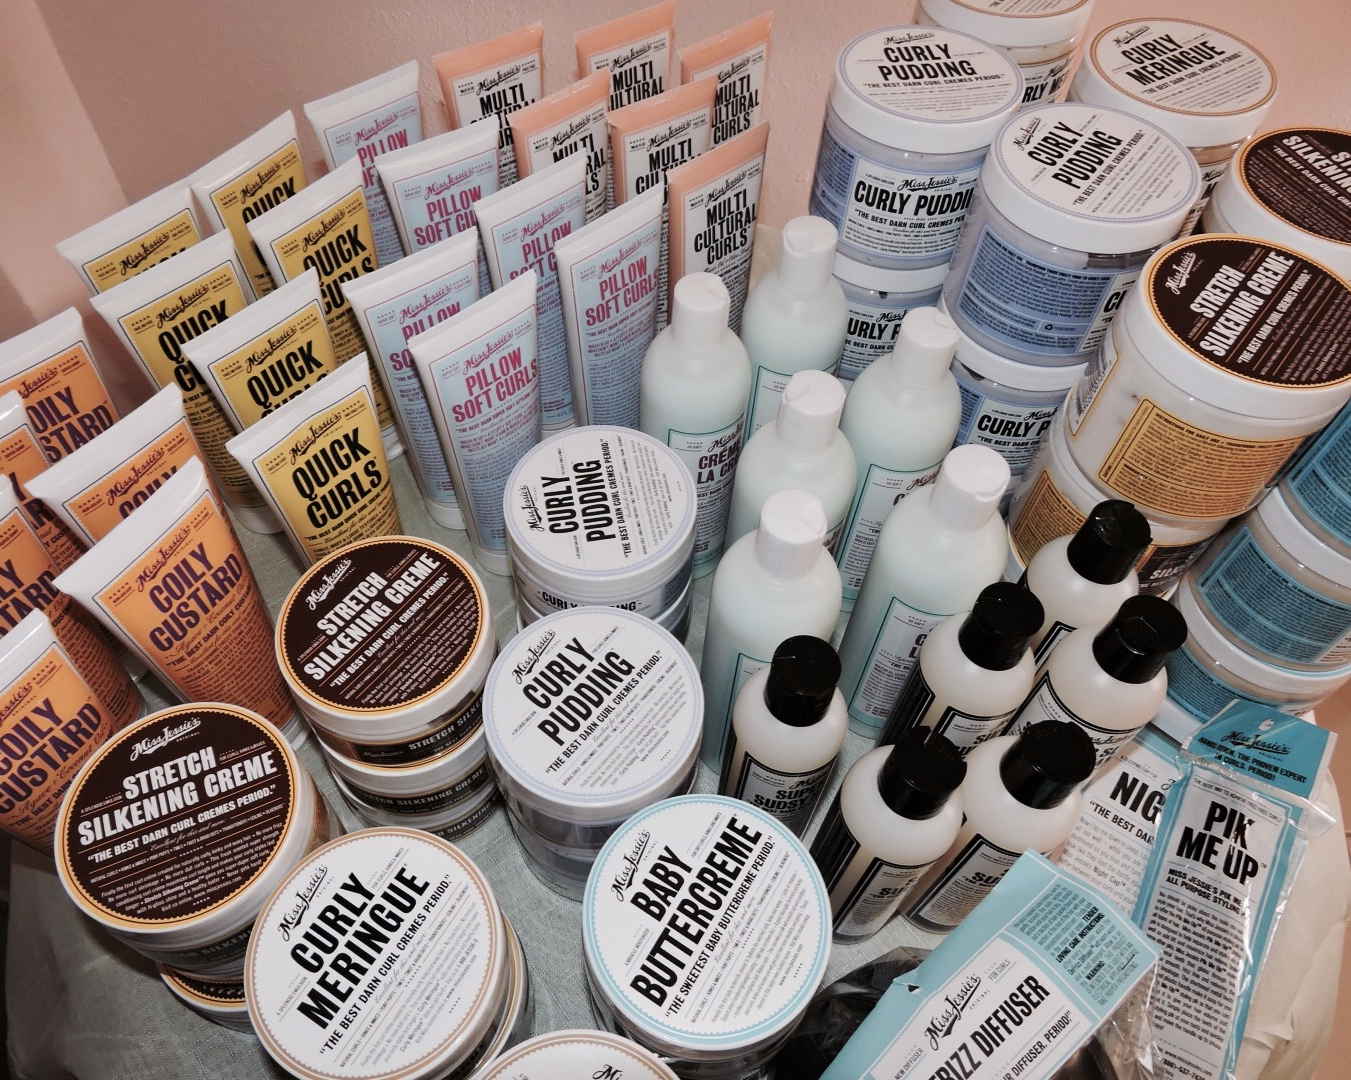 Miss Jessie's products